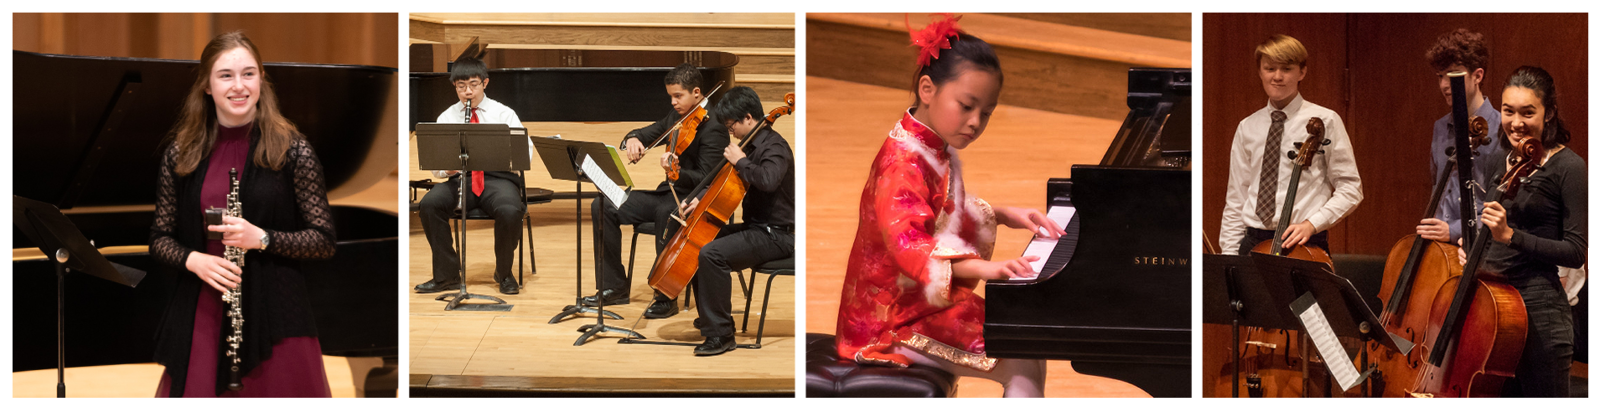 Four recital photos: a student smiling and holding her oboe on stage, a chamber ensemble performing on stage, a young student playing the piano on stage, students standing up and smiling after a performance